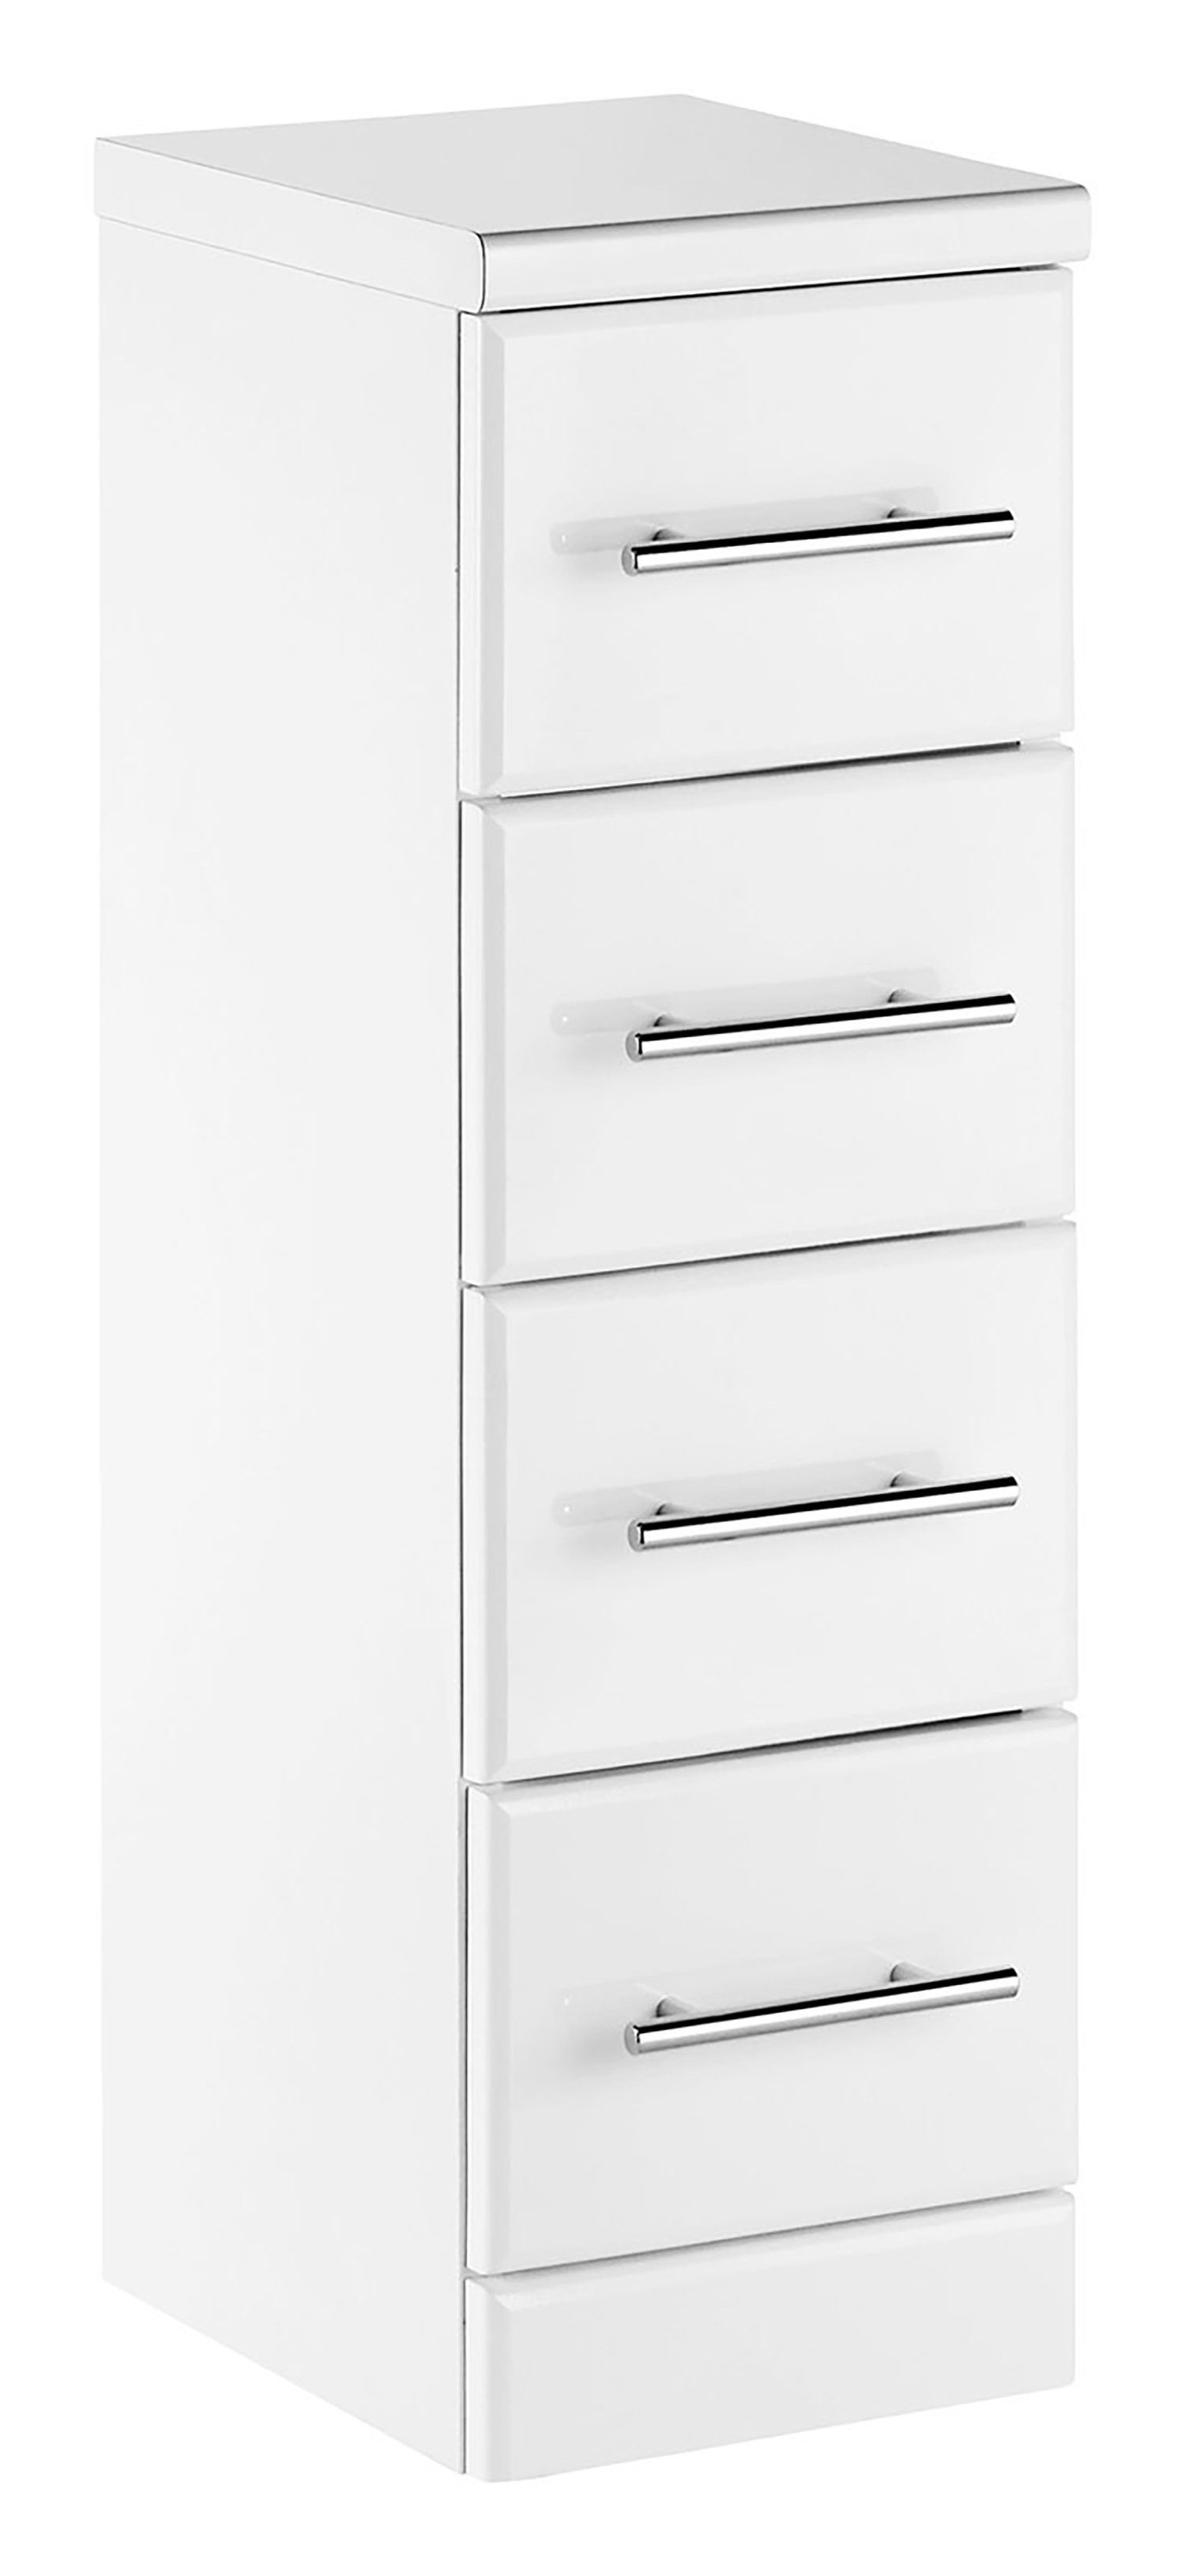 Aquachic White Gloss 4 Drawer Unit Bathroom Furniture Cabinets within proportions 1500 X 3261